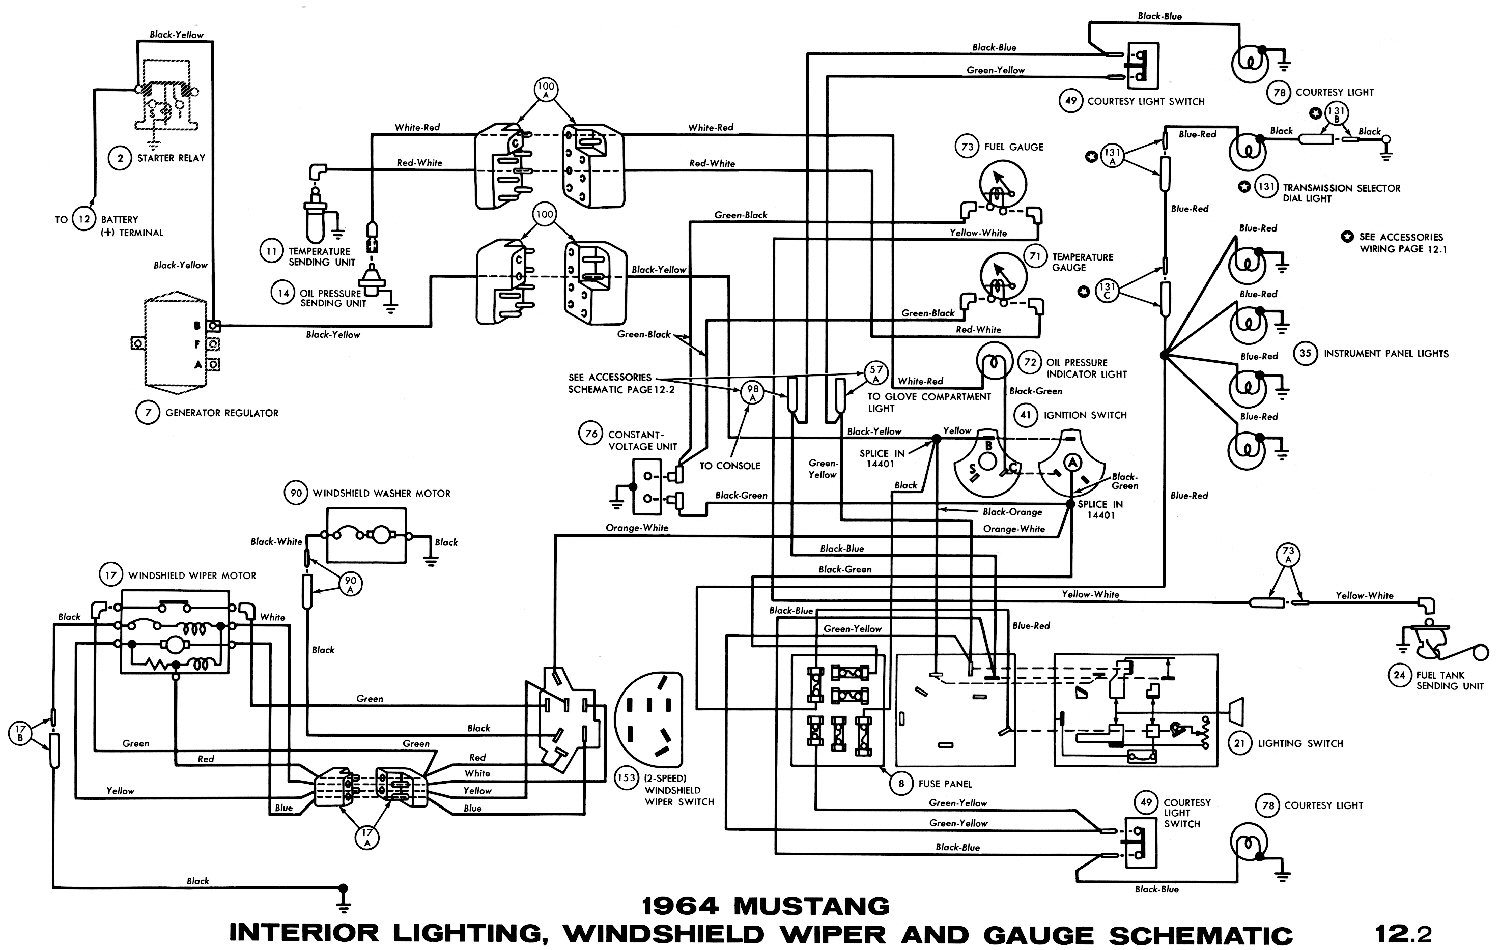 1964 Mustang Wiring Diagrams Average Joe Restoration Ford Oil Pressure